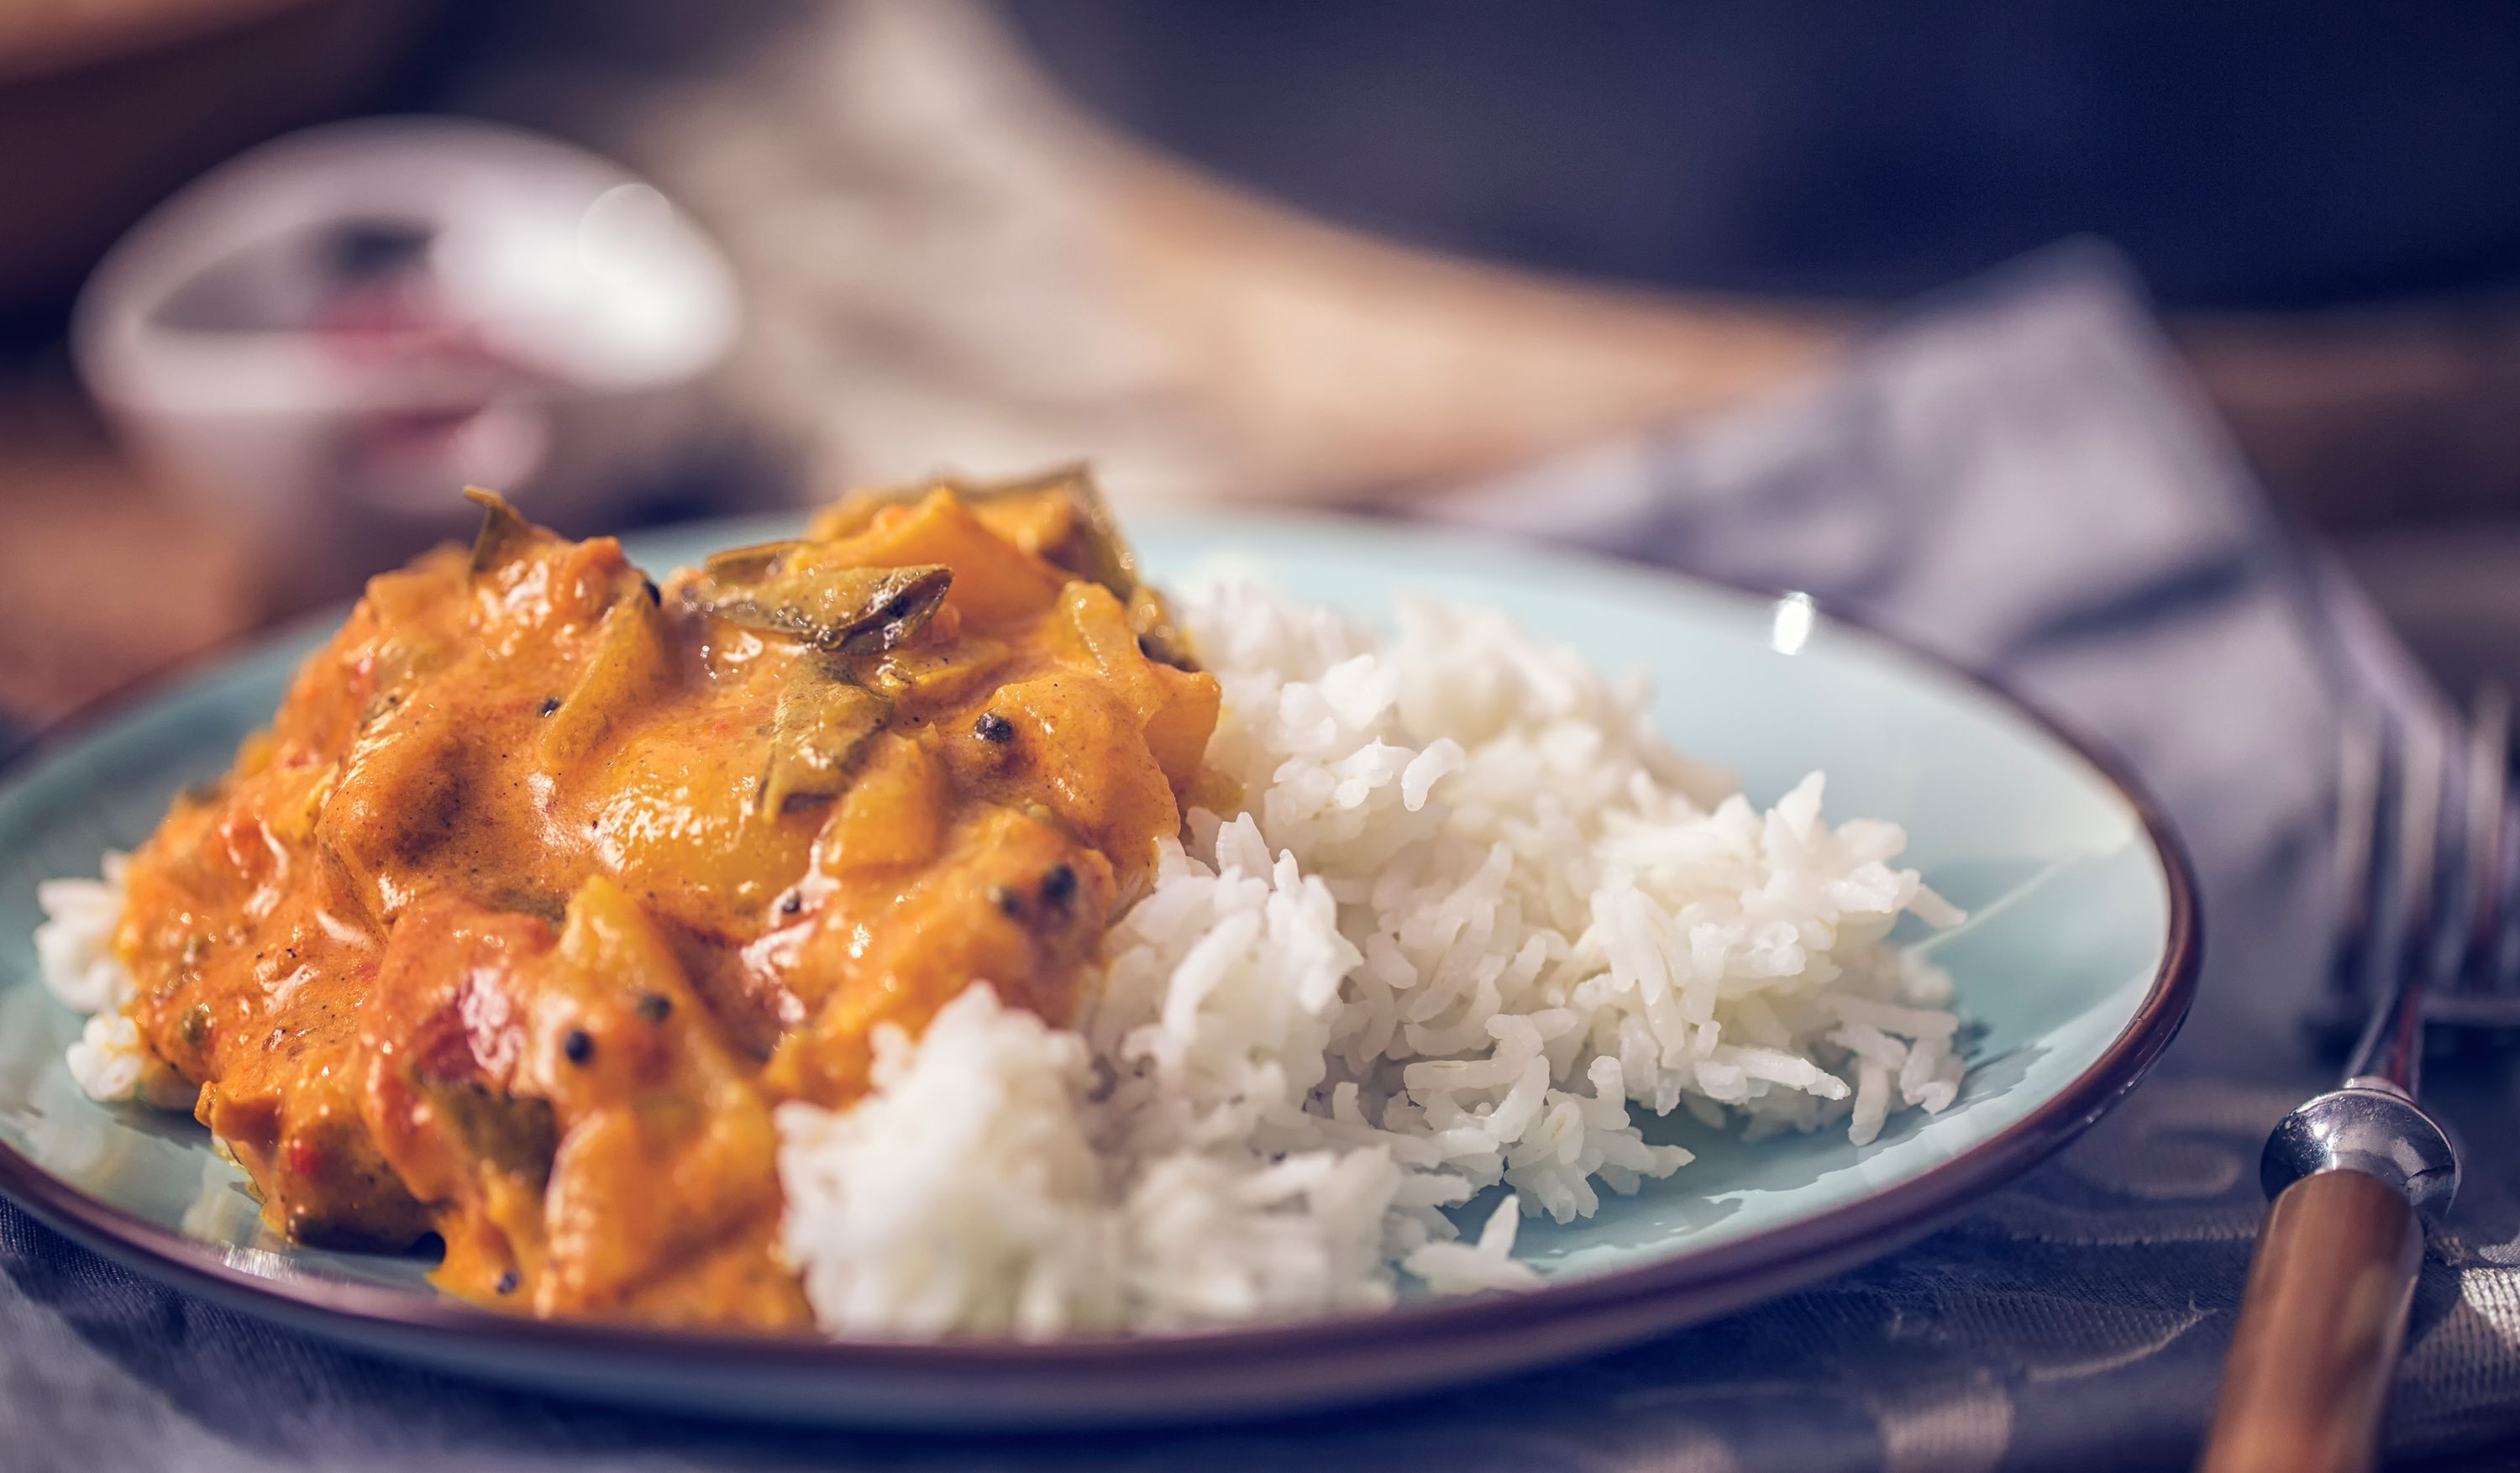 Budget Supermarket Curry Wins Blind Taste Test Against